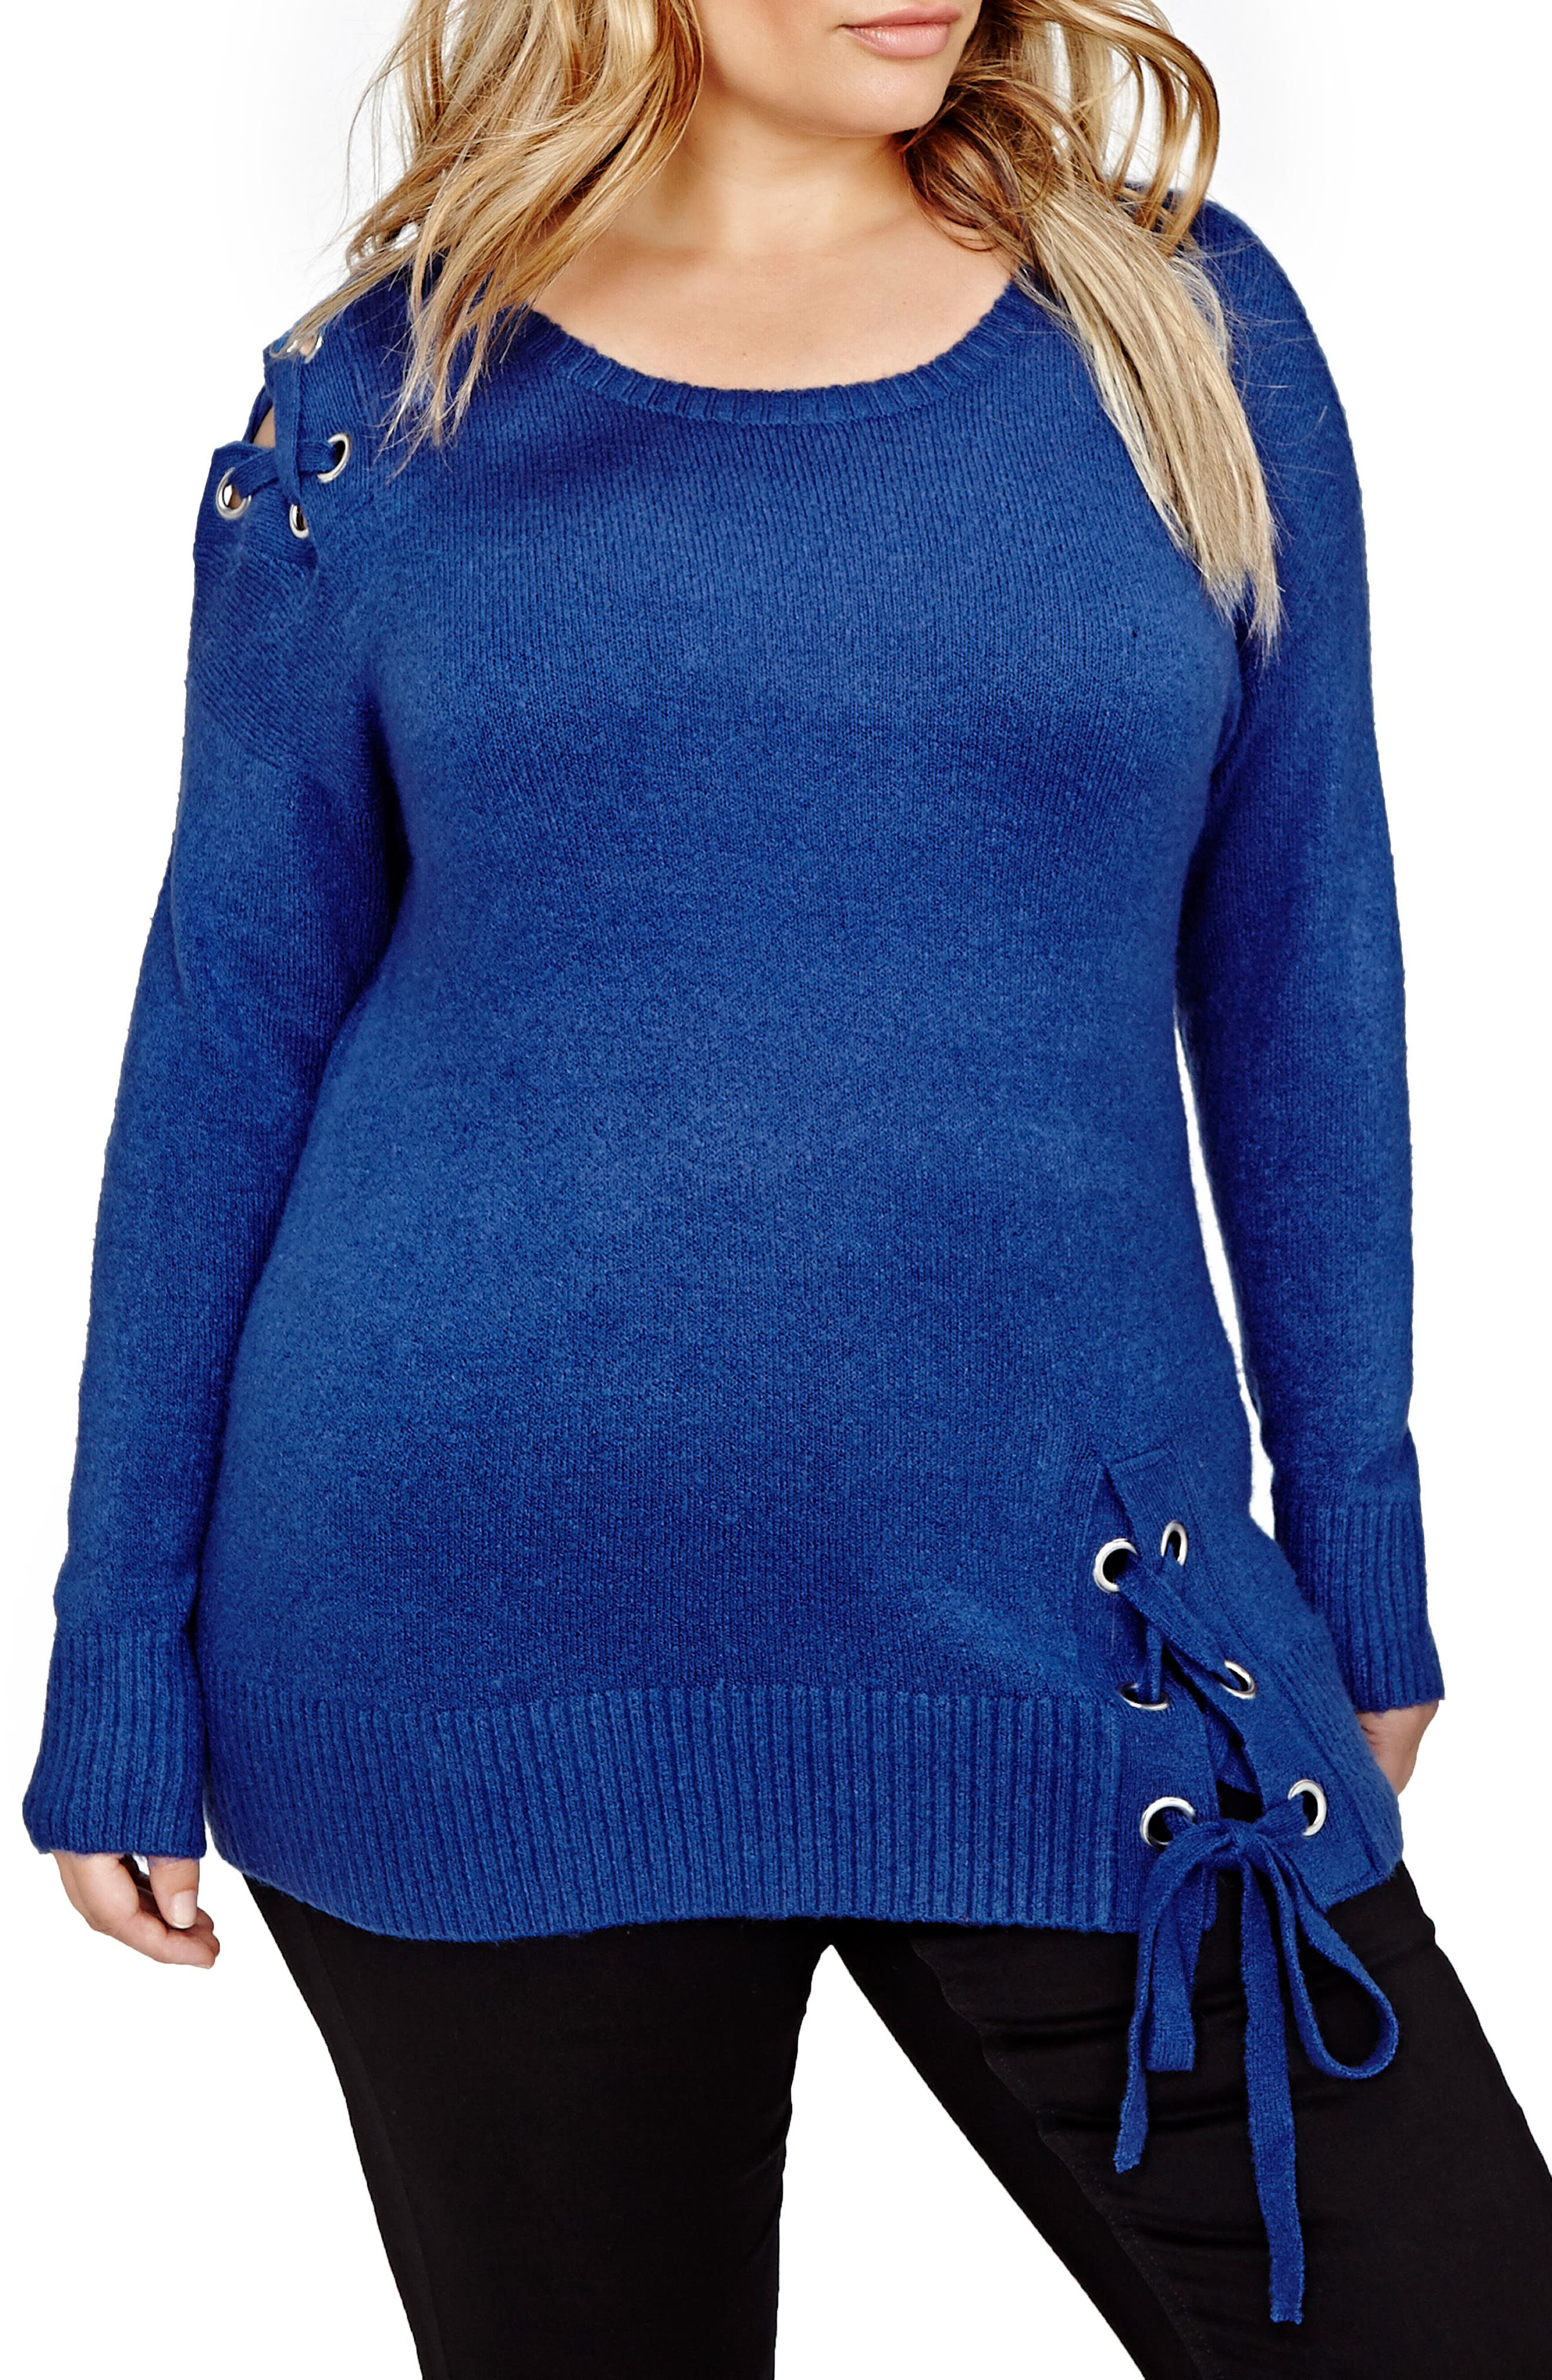 ADDITION ELLE LOVE AND LEGEND Lace-Up Sweater (Plus Size)